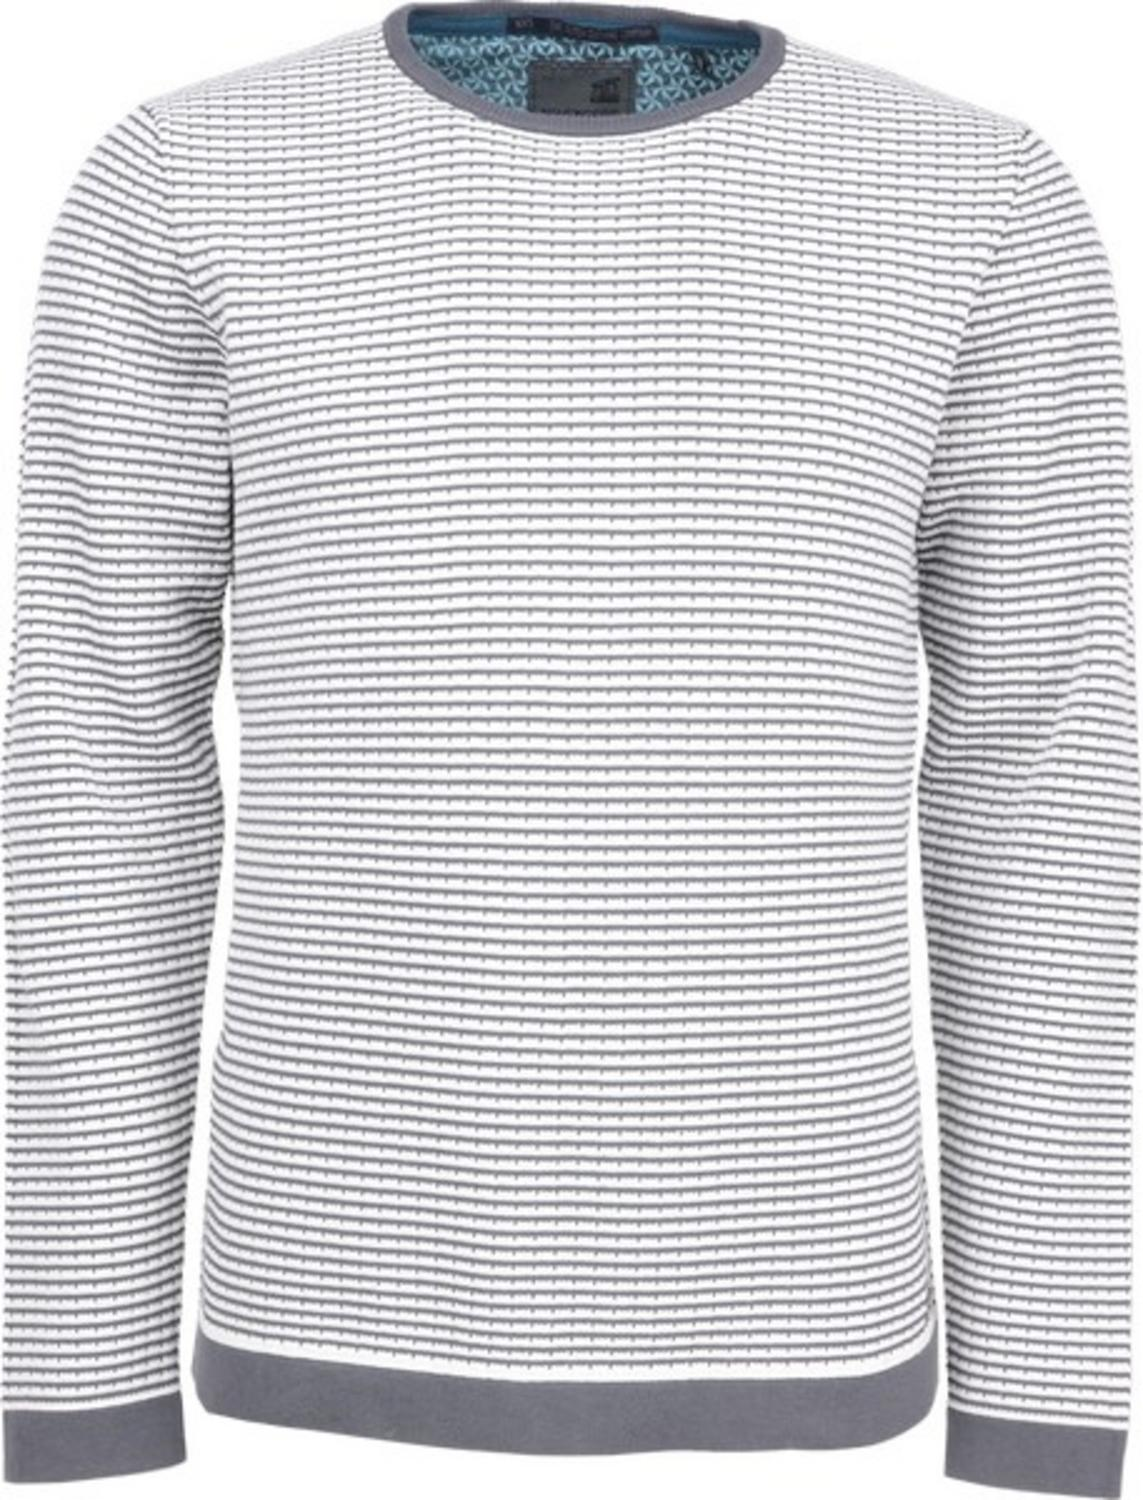 Pullover R-neck, high twisted 2 col jacquard fine